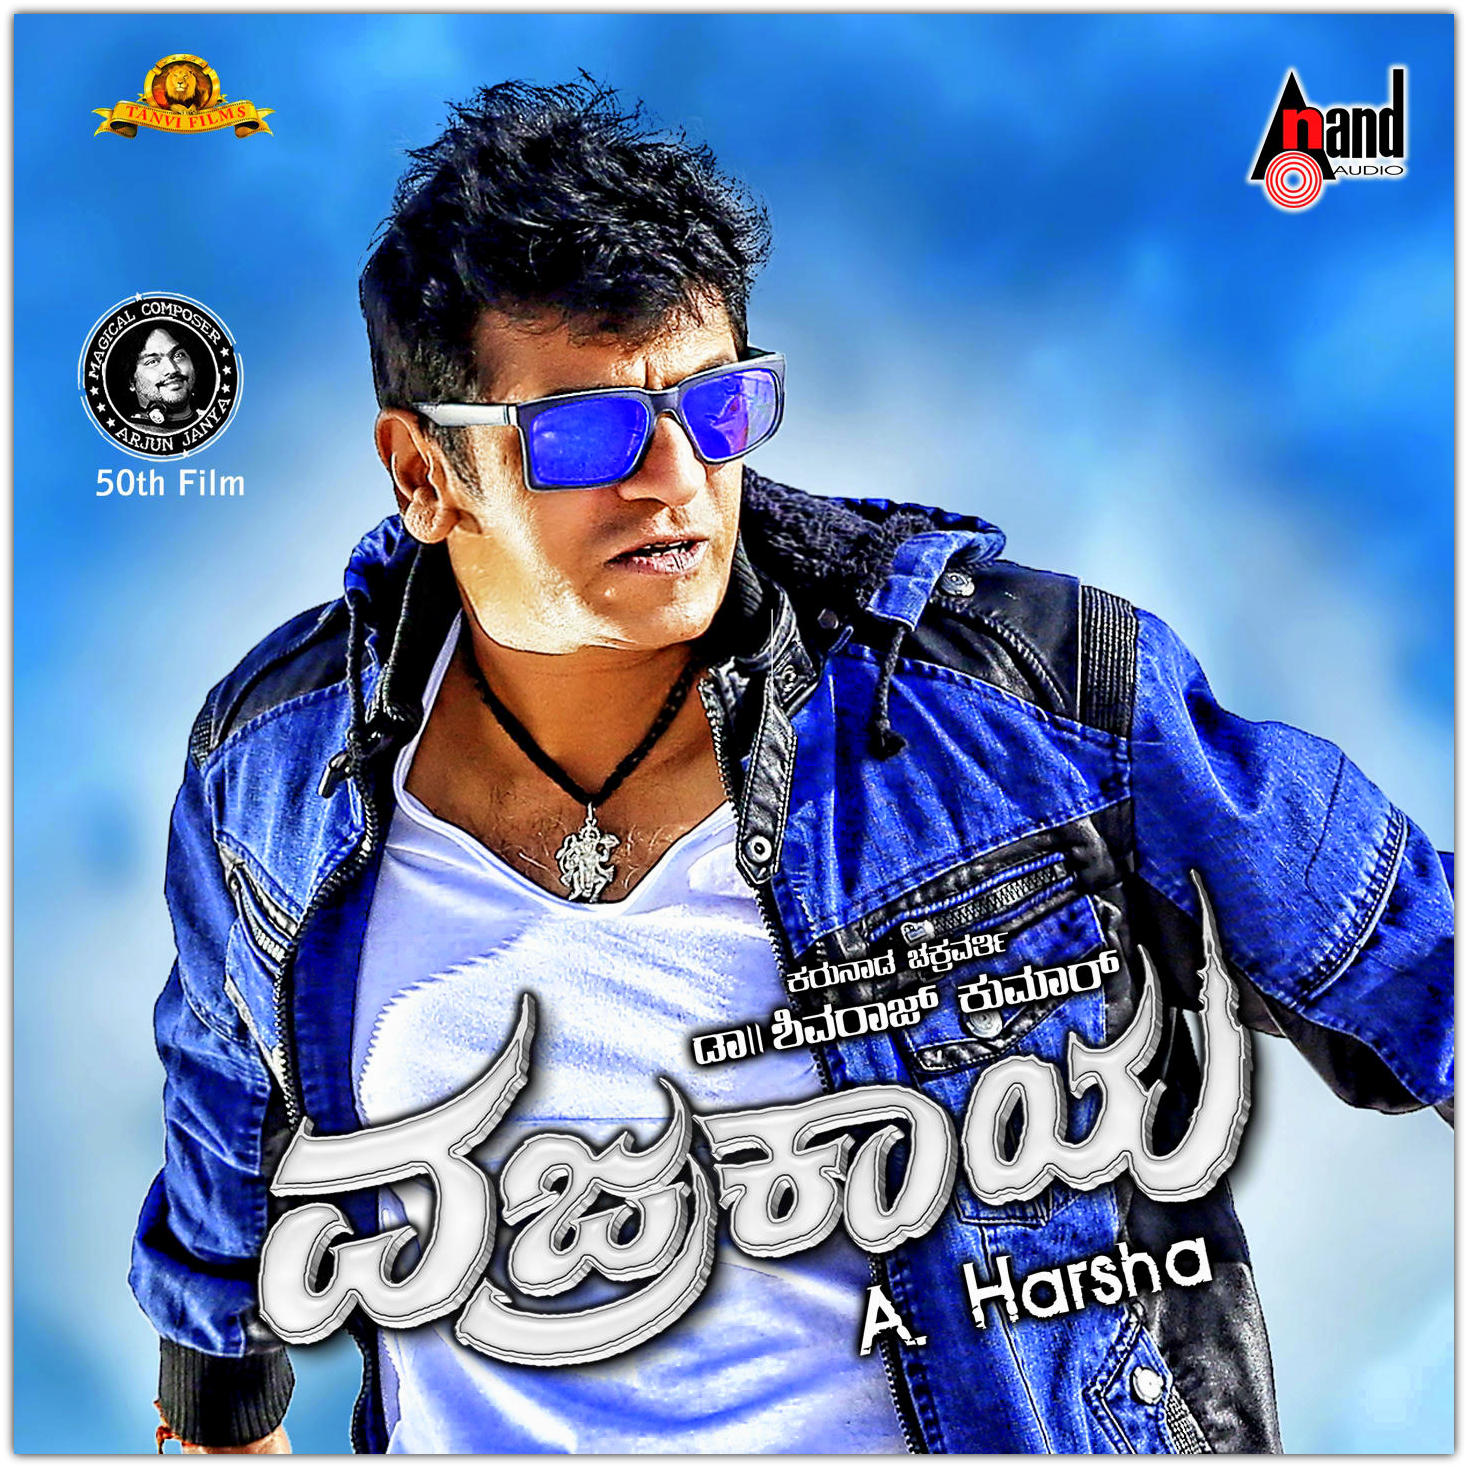 No Need Mp3 Song Djpunjab: Kannada Mp3 Songs: Vajrakaya (2015) Kannada Movie Mp3 Songs